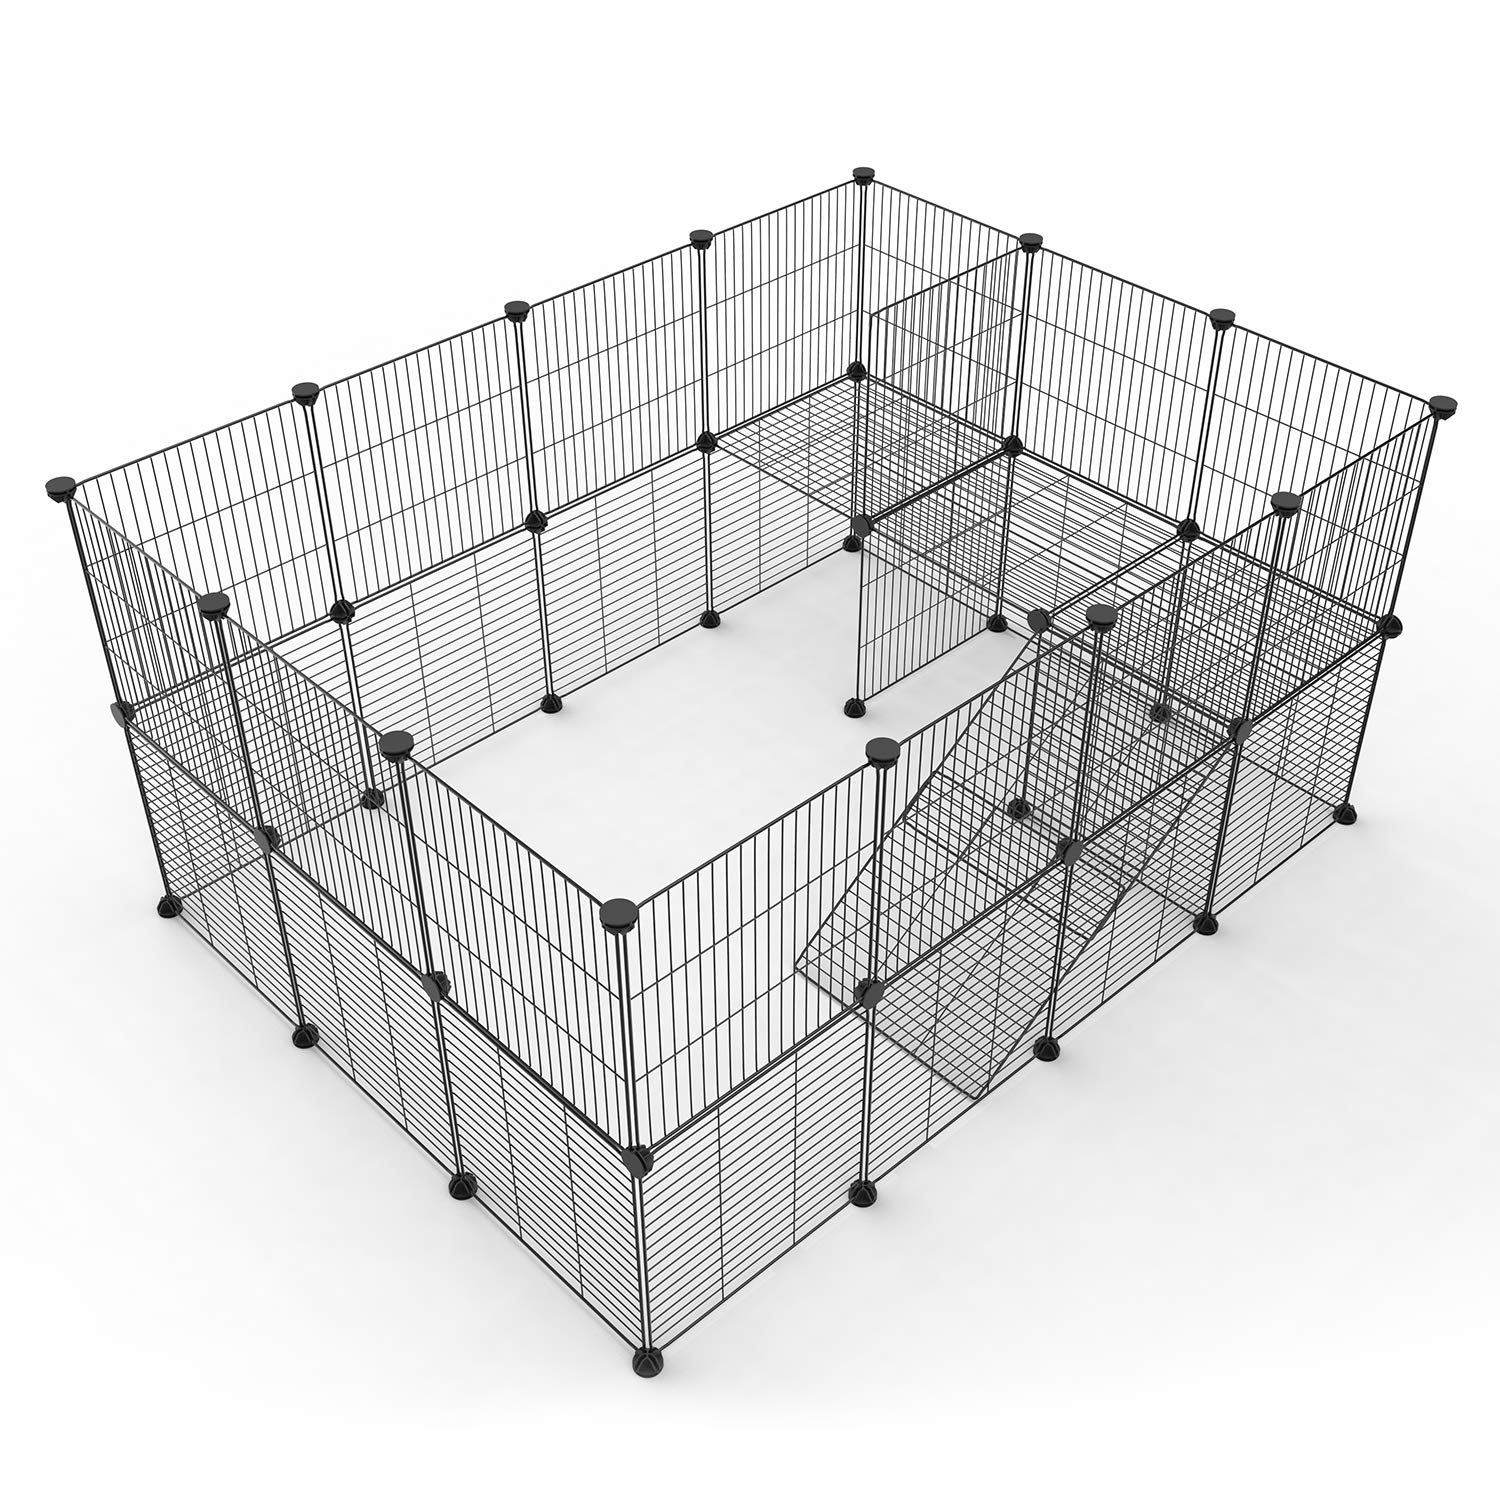 Tespo Pet Playpen, Small Animal Cage Indoor Portable Metal Wire Yard Fence for Small Animals, Guinea Pigs, Rabbits Kennel Crate Fence Tent (Black,36 Panels Upgrade) by Tespo (Image #1)